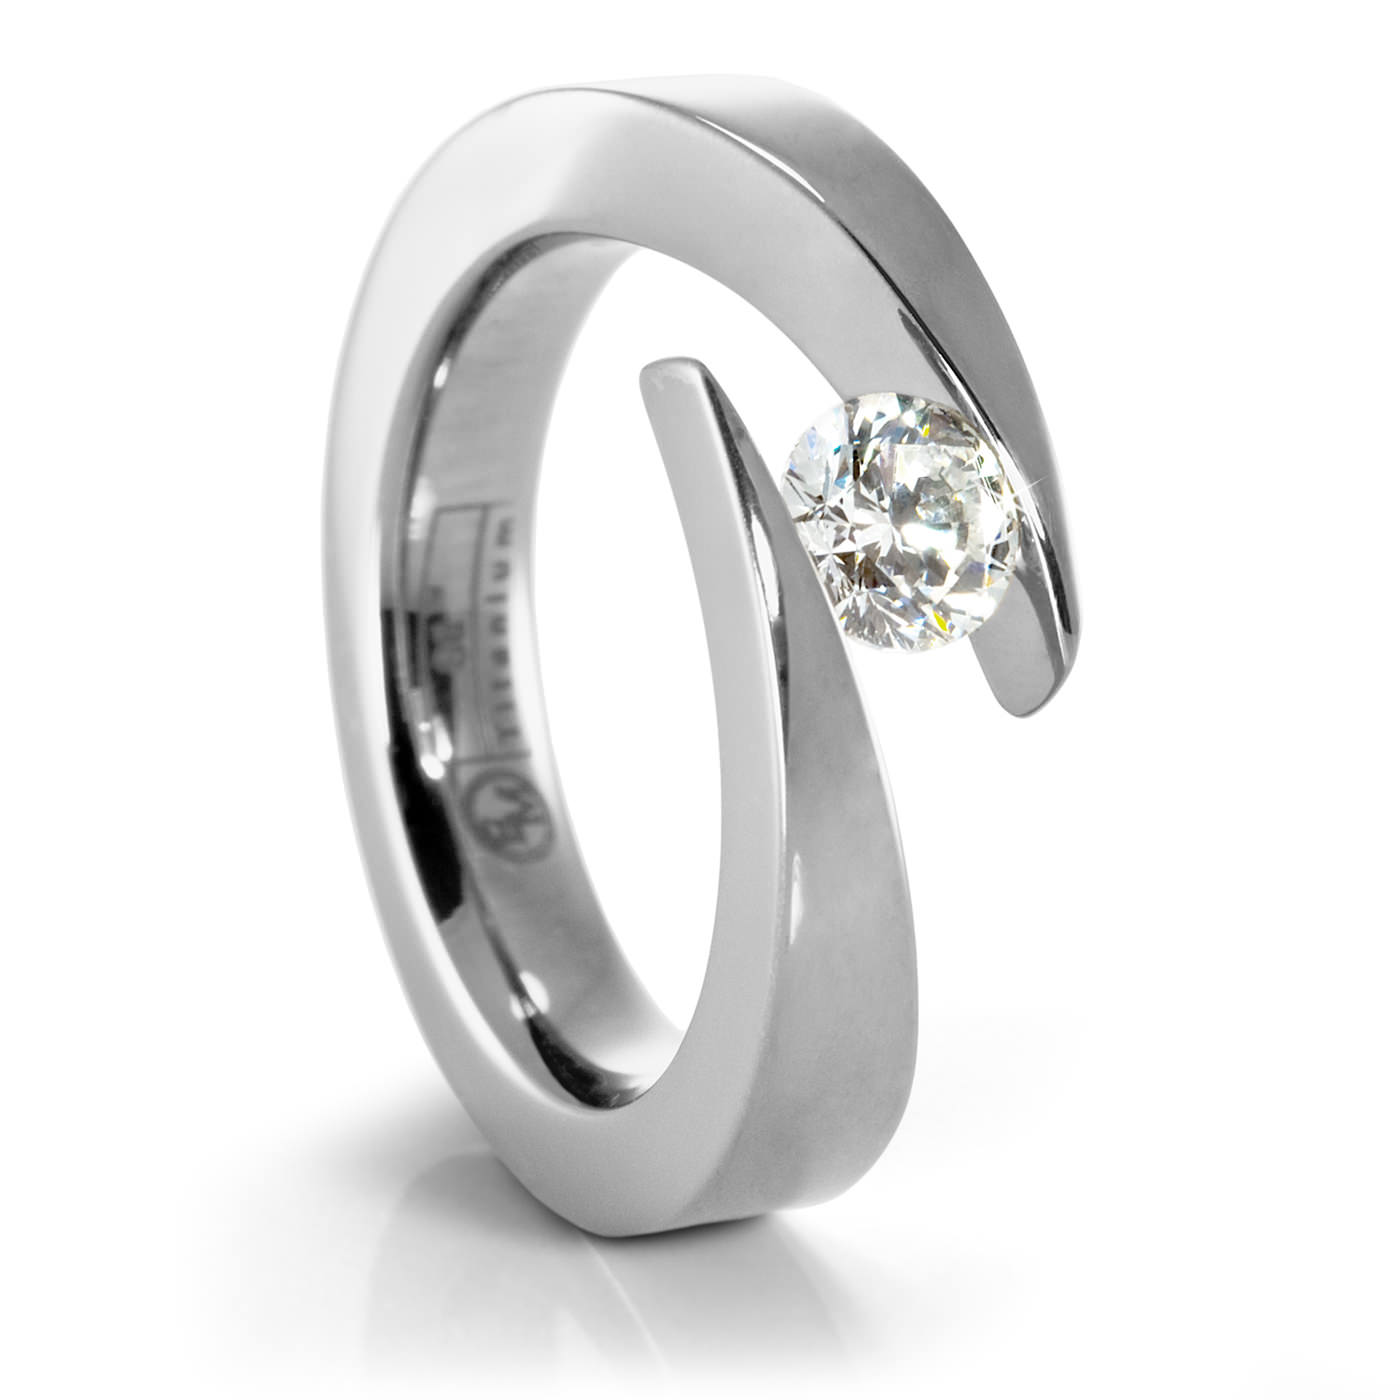 wedding weddings easy ring practical articles engagement and rings